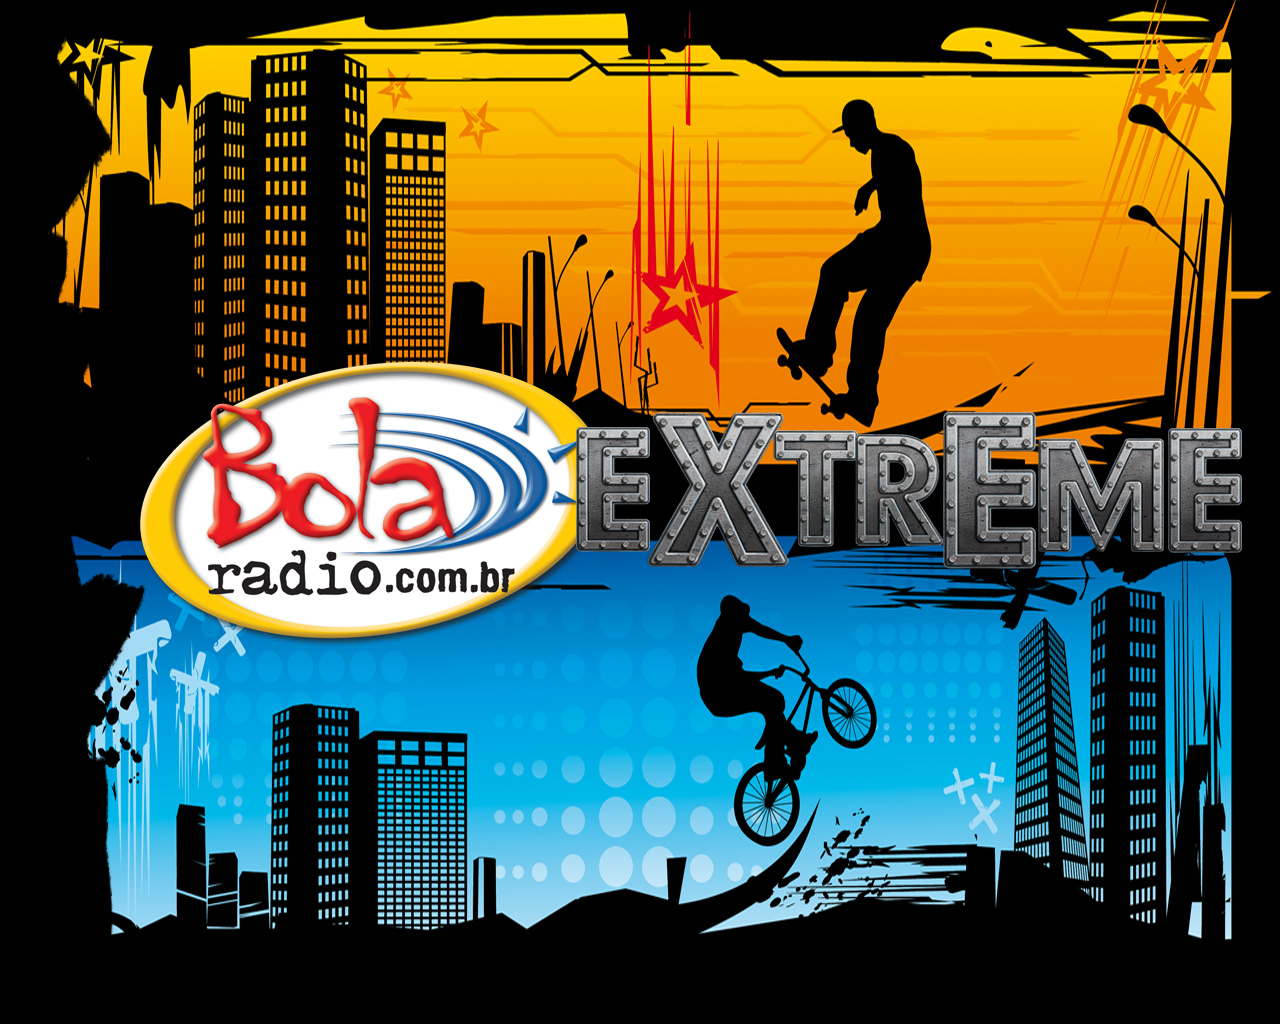 Dating site for extreme sports